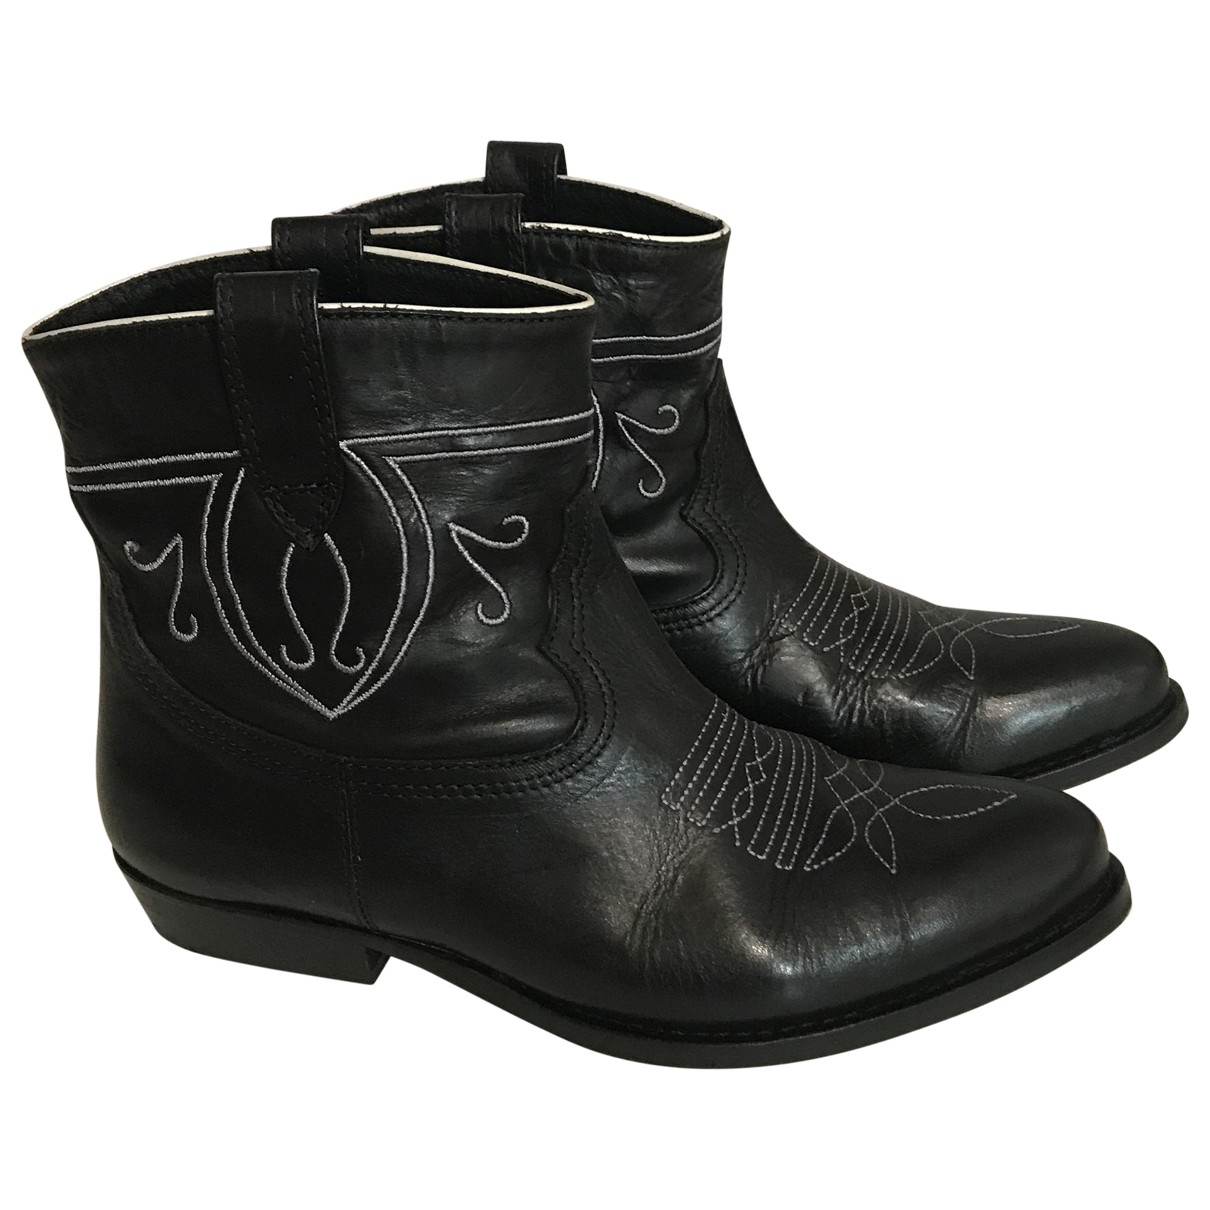 Ba&sh \N Black Leather Ankle boots for Women 36 EU